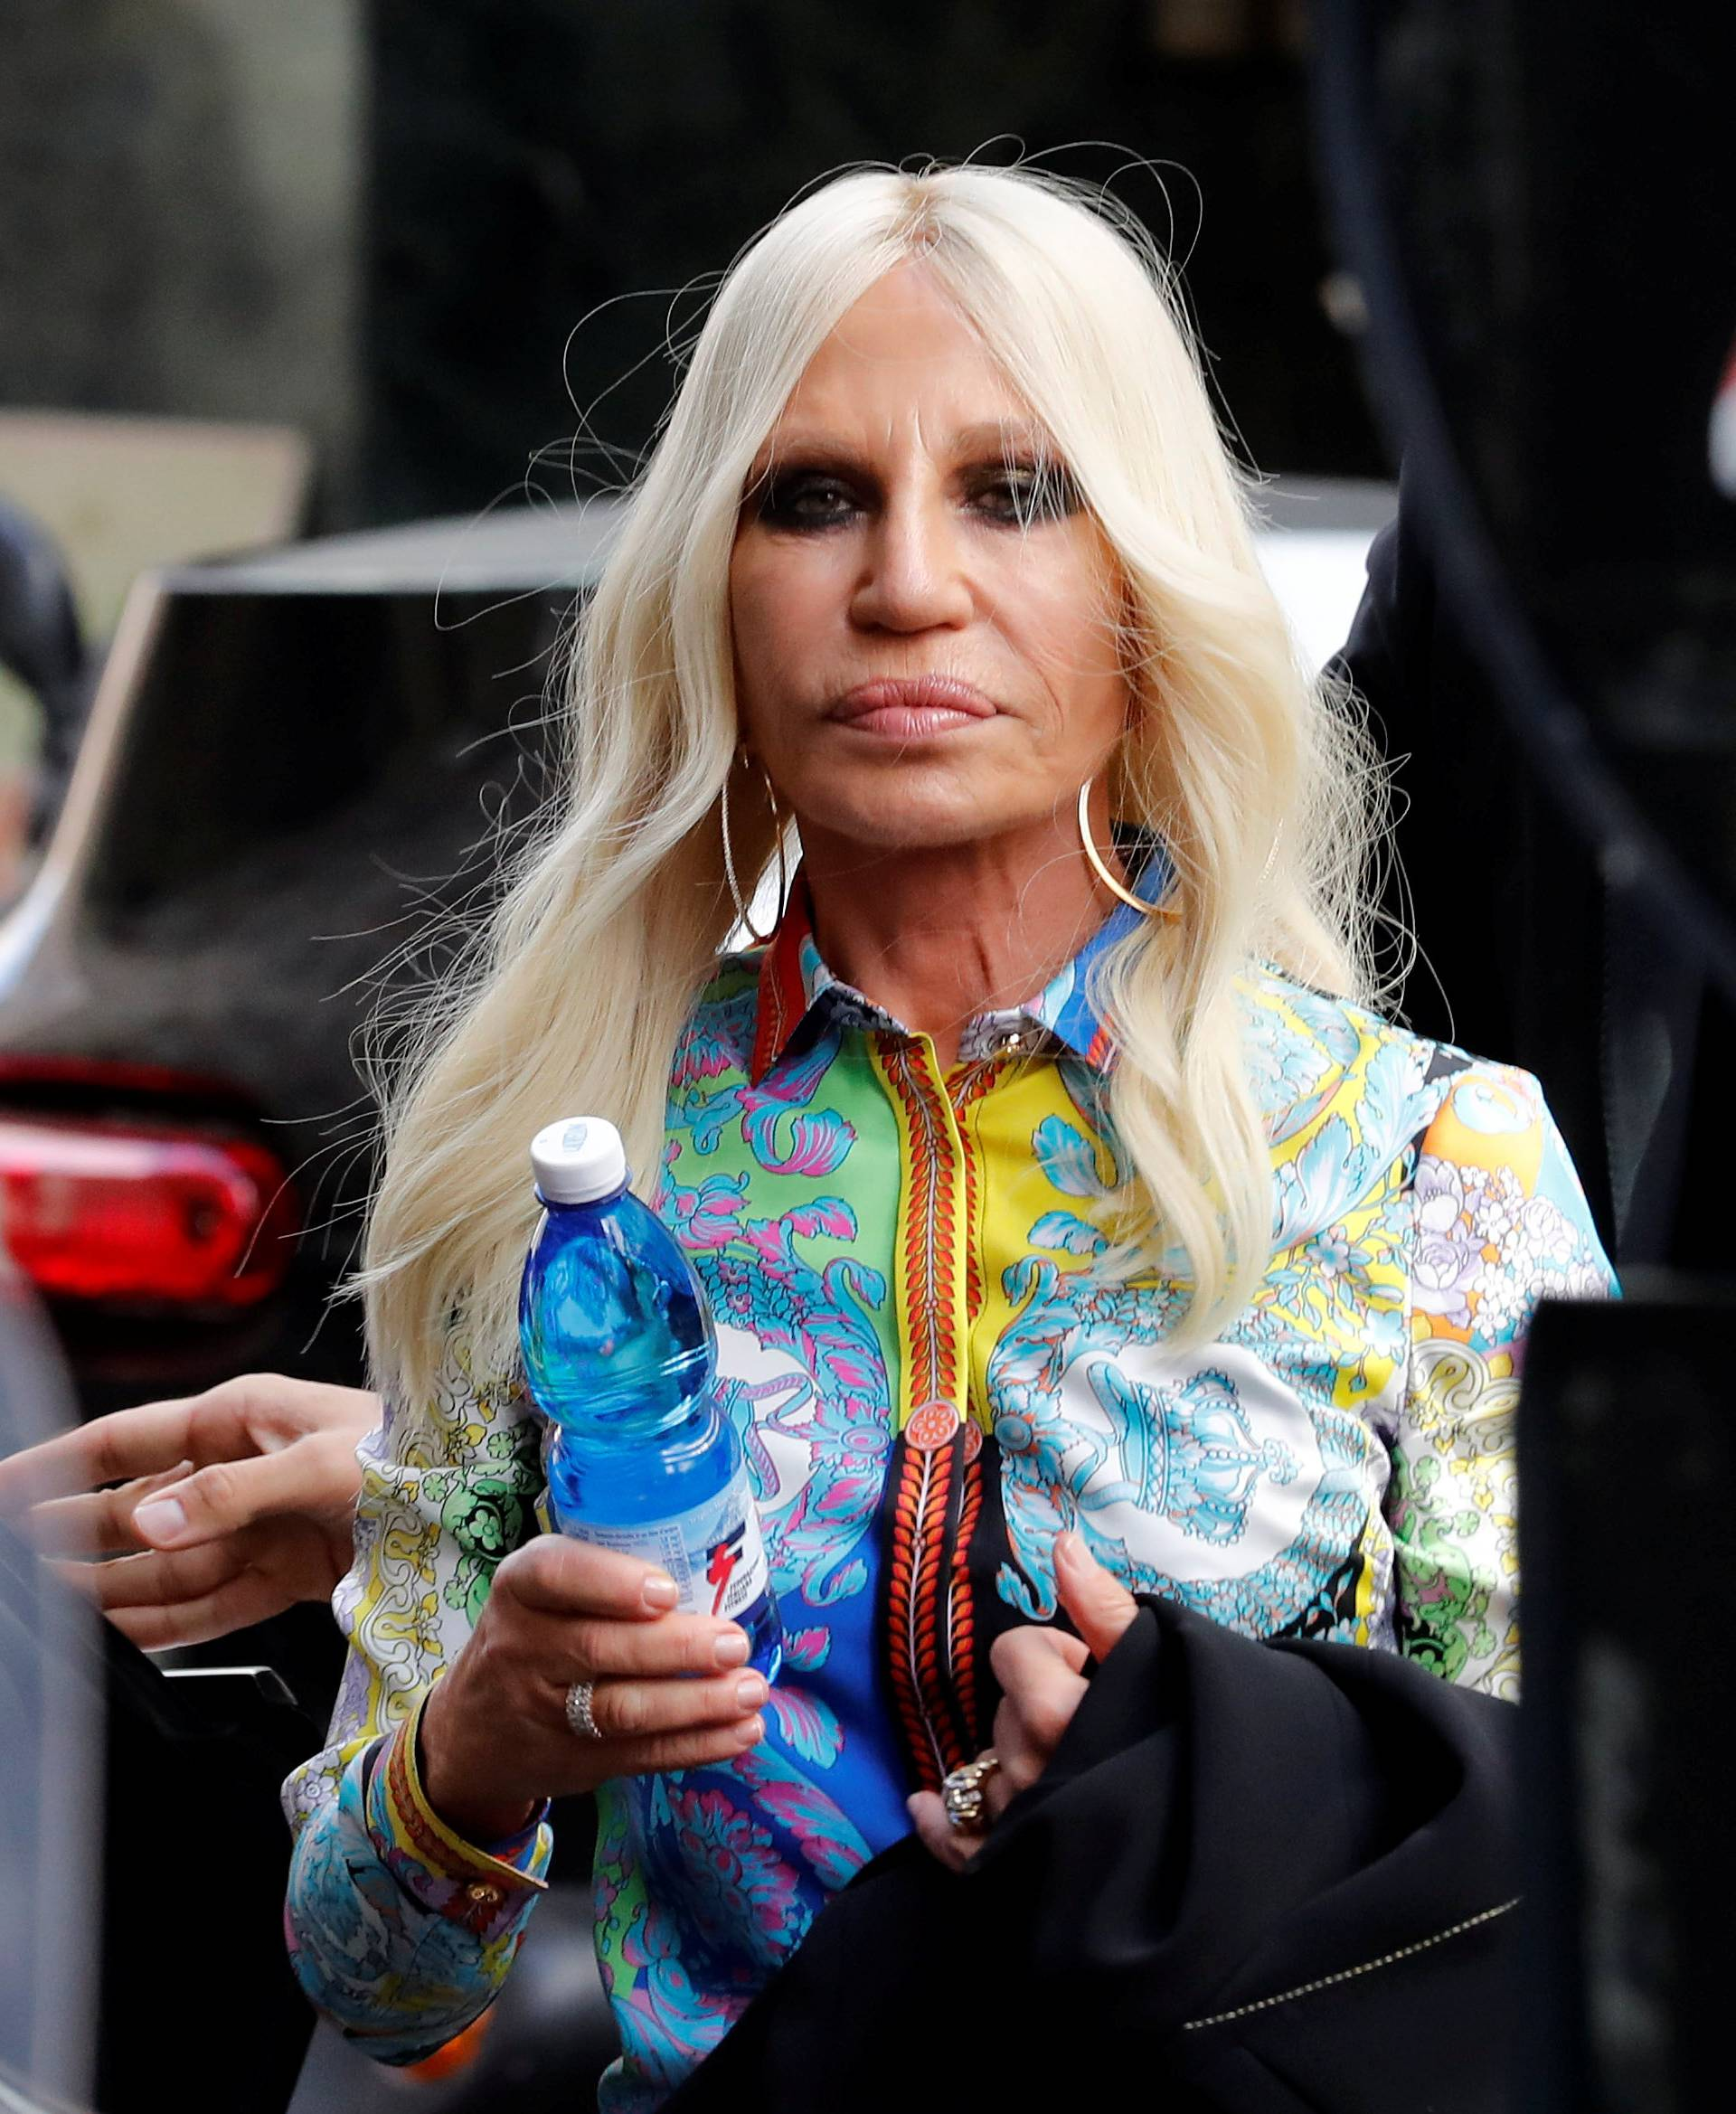 Italian designer Donatella Versace arrives to meet employees in Milan